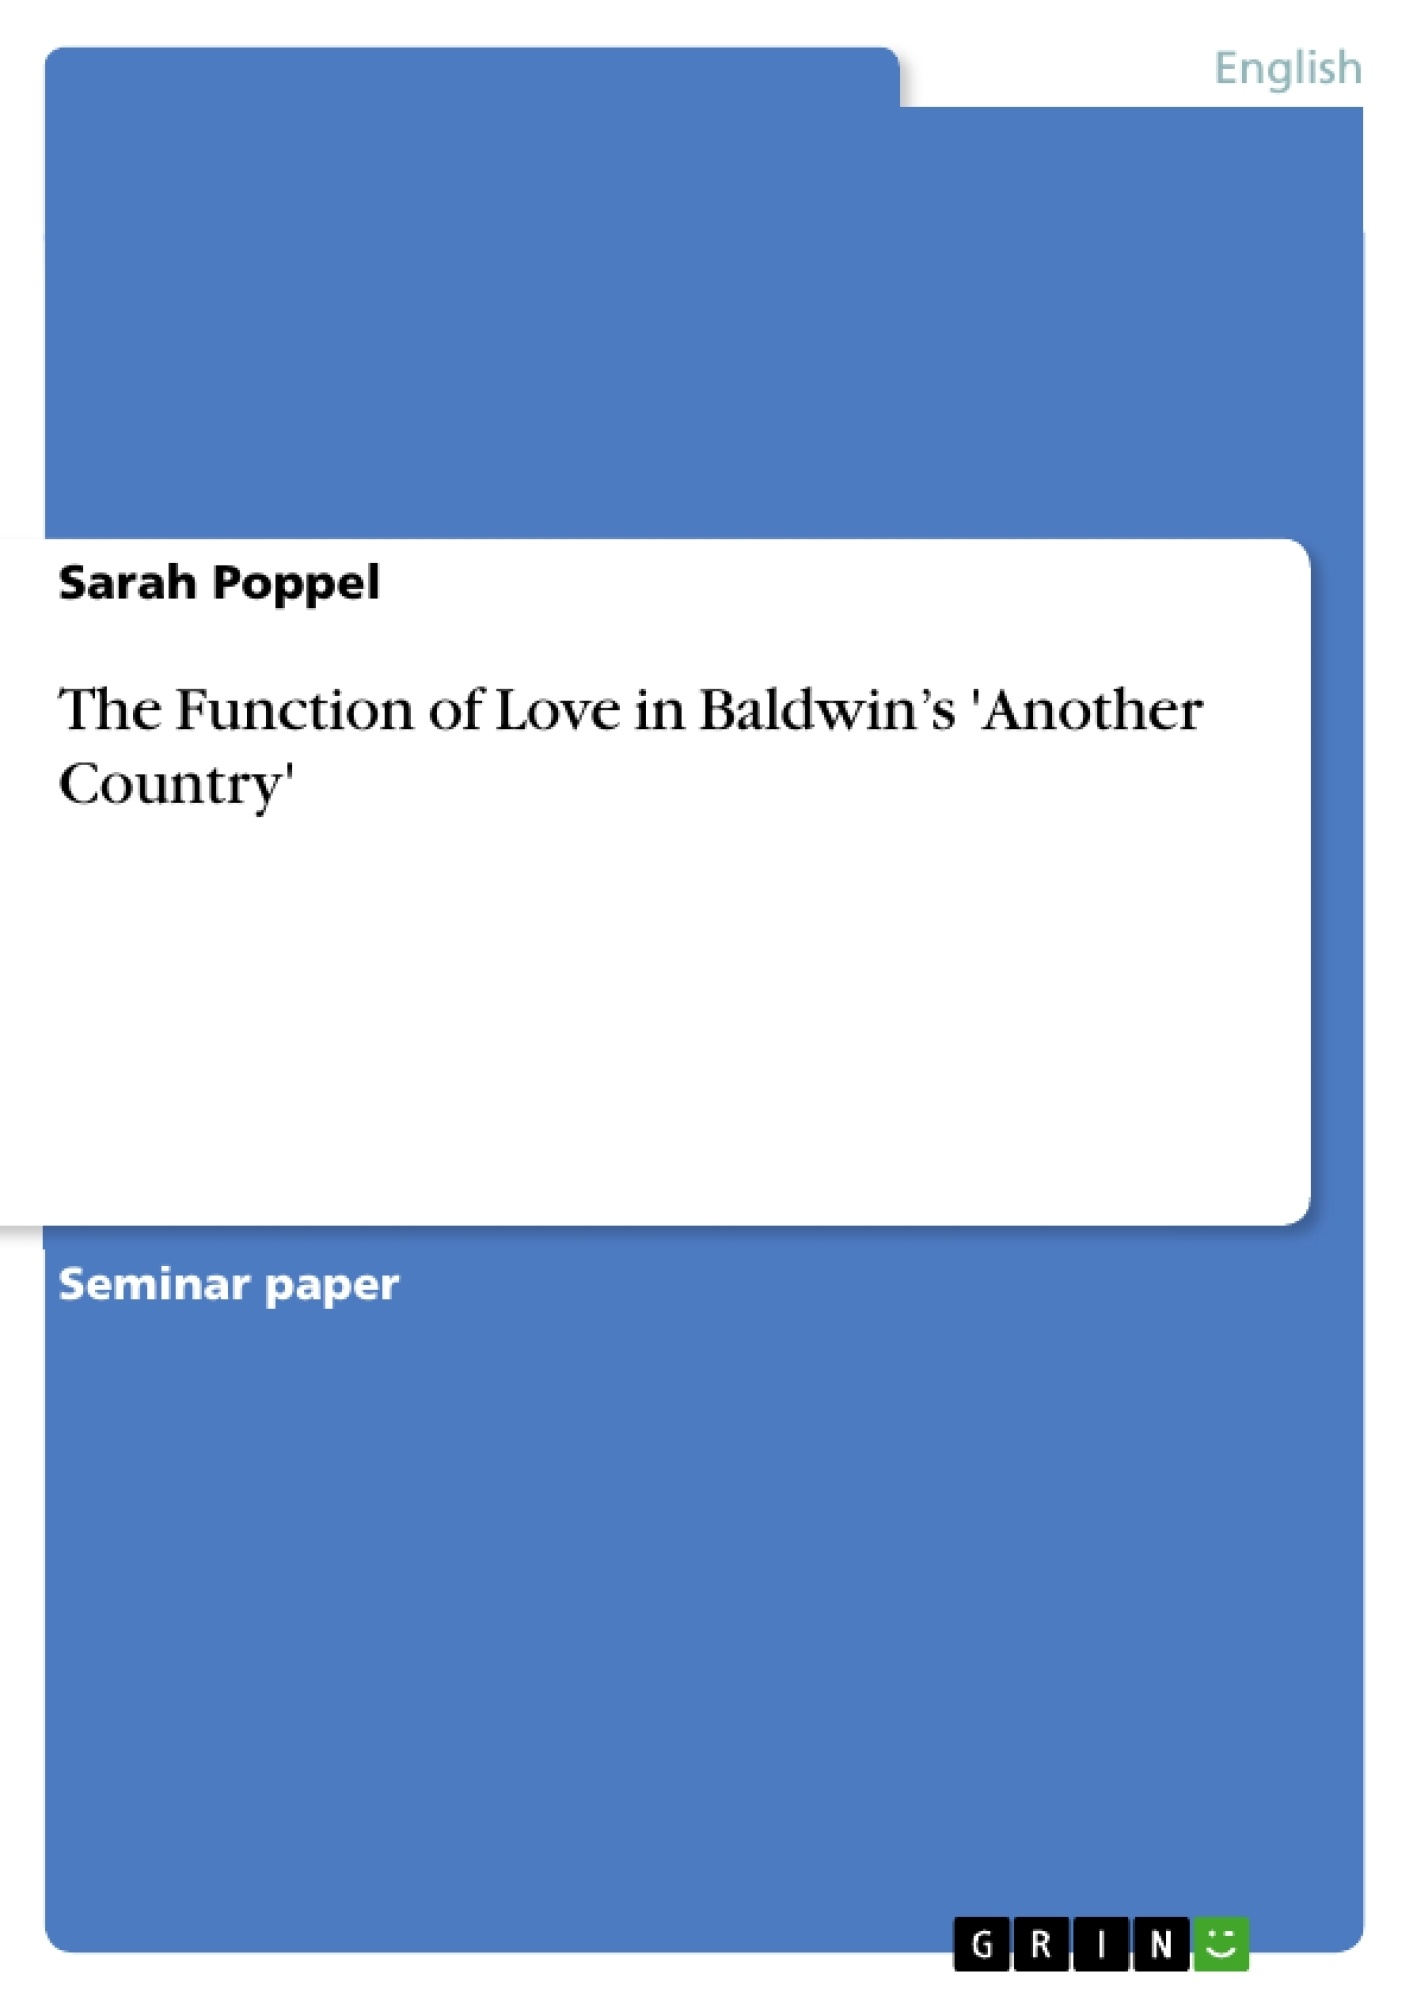 Title: The Function of Love in Baldwin's 'Another Country'